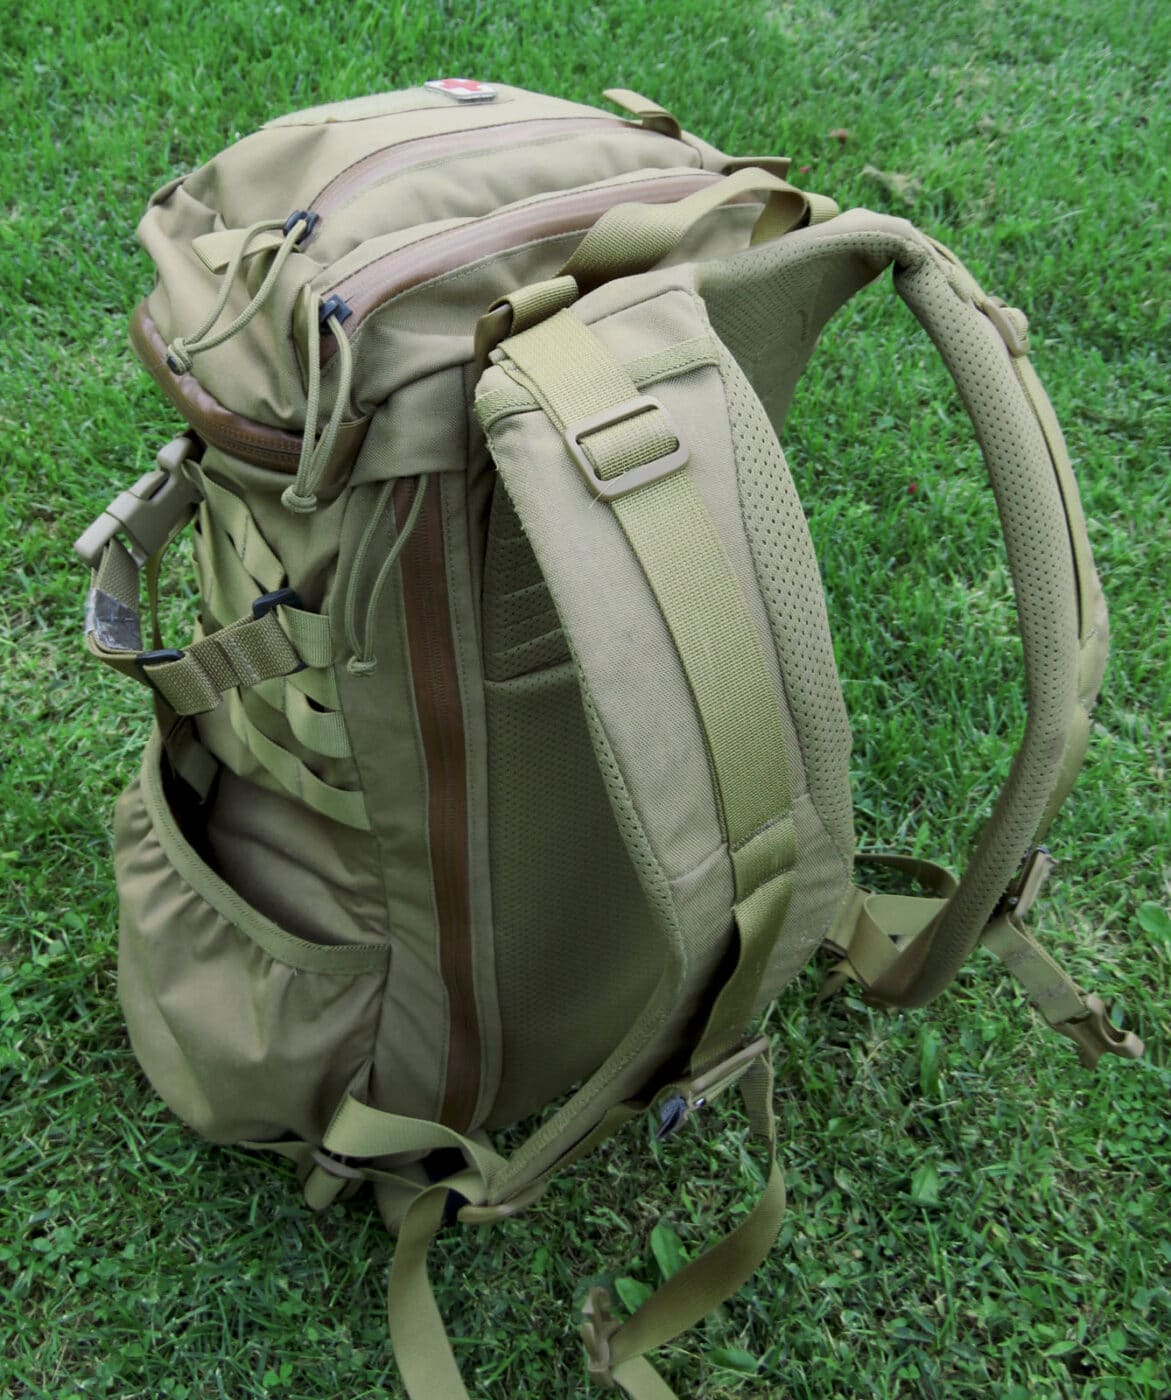 Shoulder straps and yoke on Mystery Ranch pack